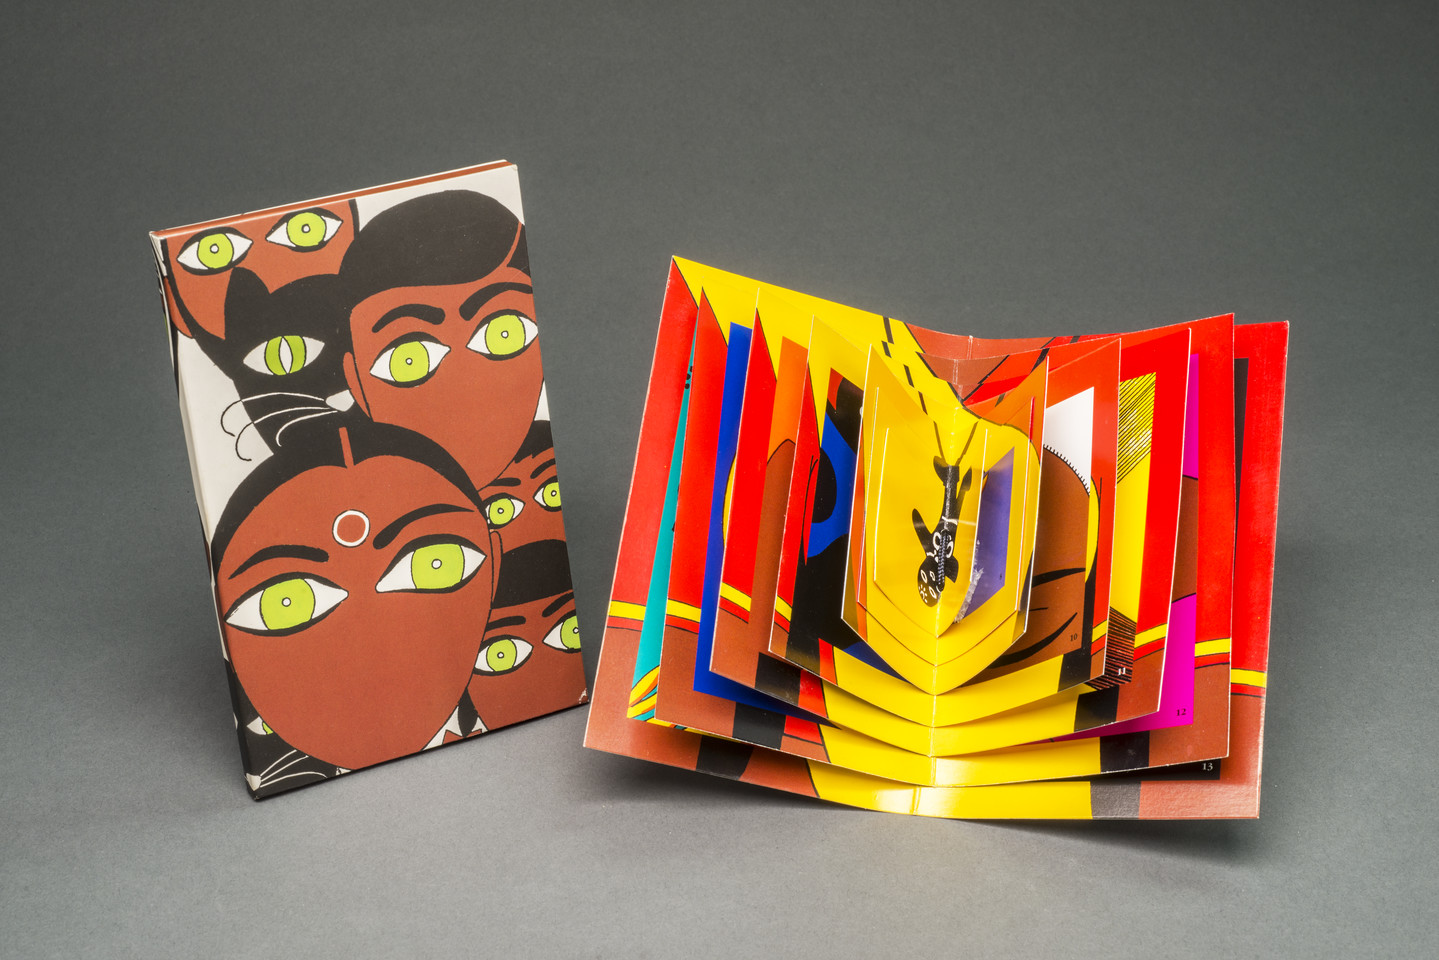 A brightly colored book displayed open whose pages decrease in size toward the center. To the left, a vertical rectangle on which is depicted five stylized faces with black hair, medium-dark skintone, green eyes, and no mouths. A black cat with green eyes is also among the faces.